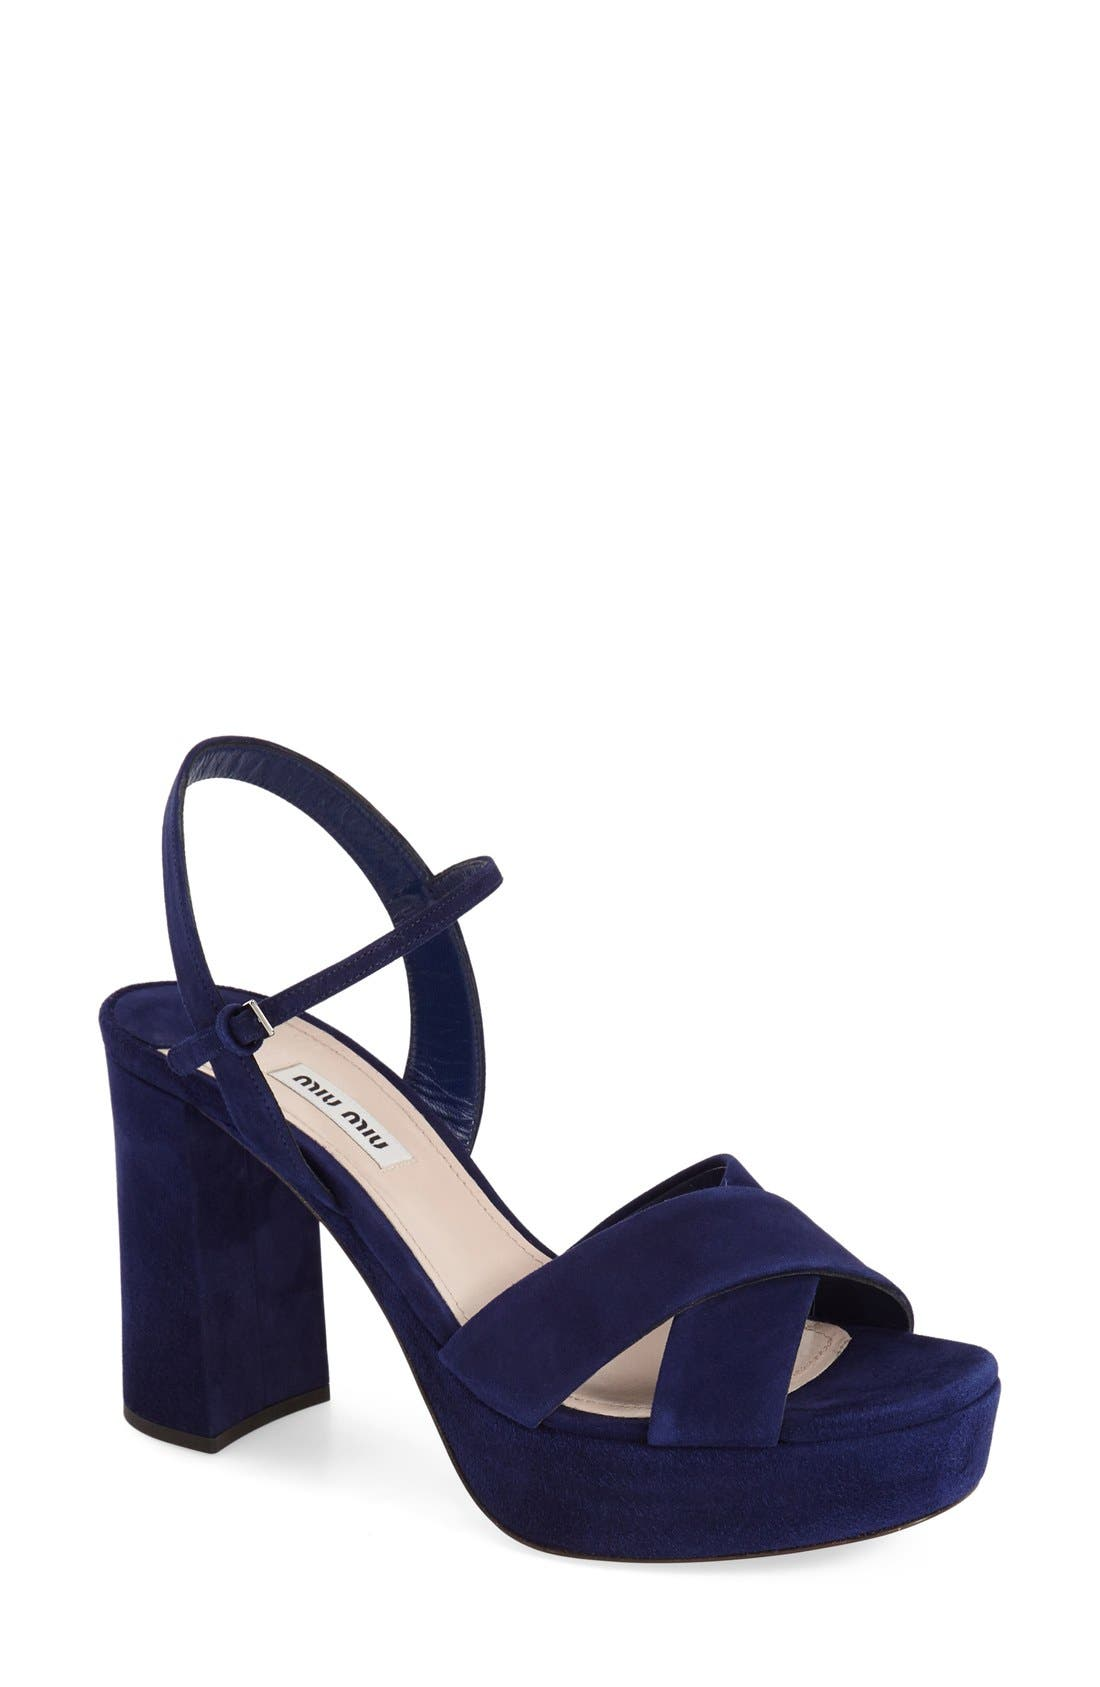 Alternate Image 1 Selected - Miu Miu Platform Sandal (Women)